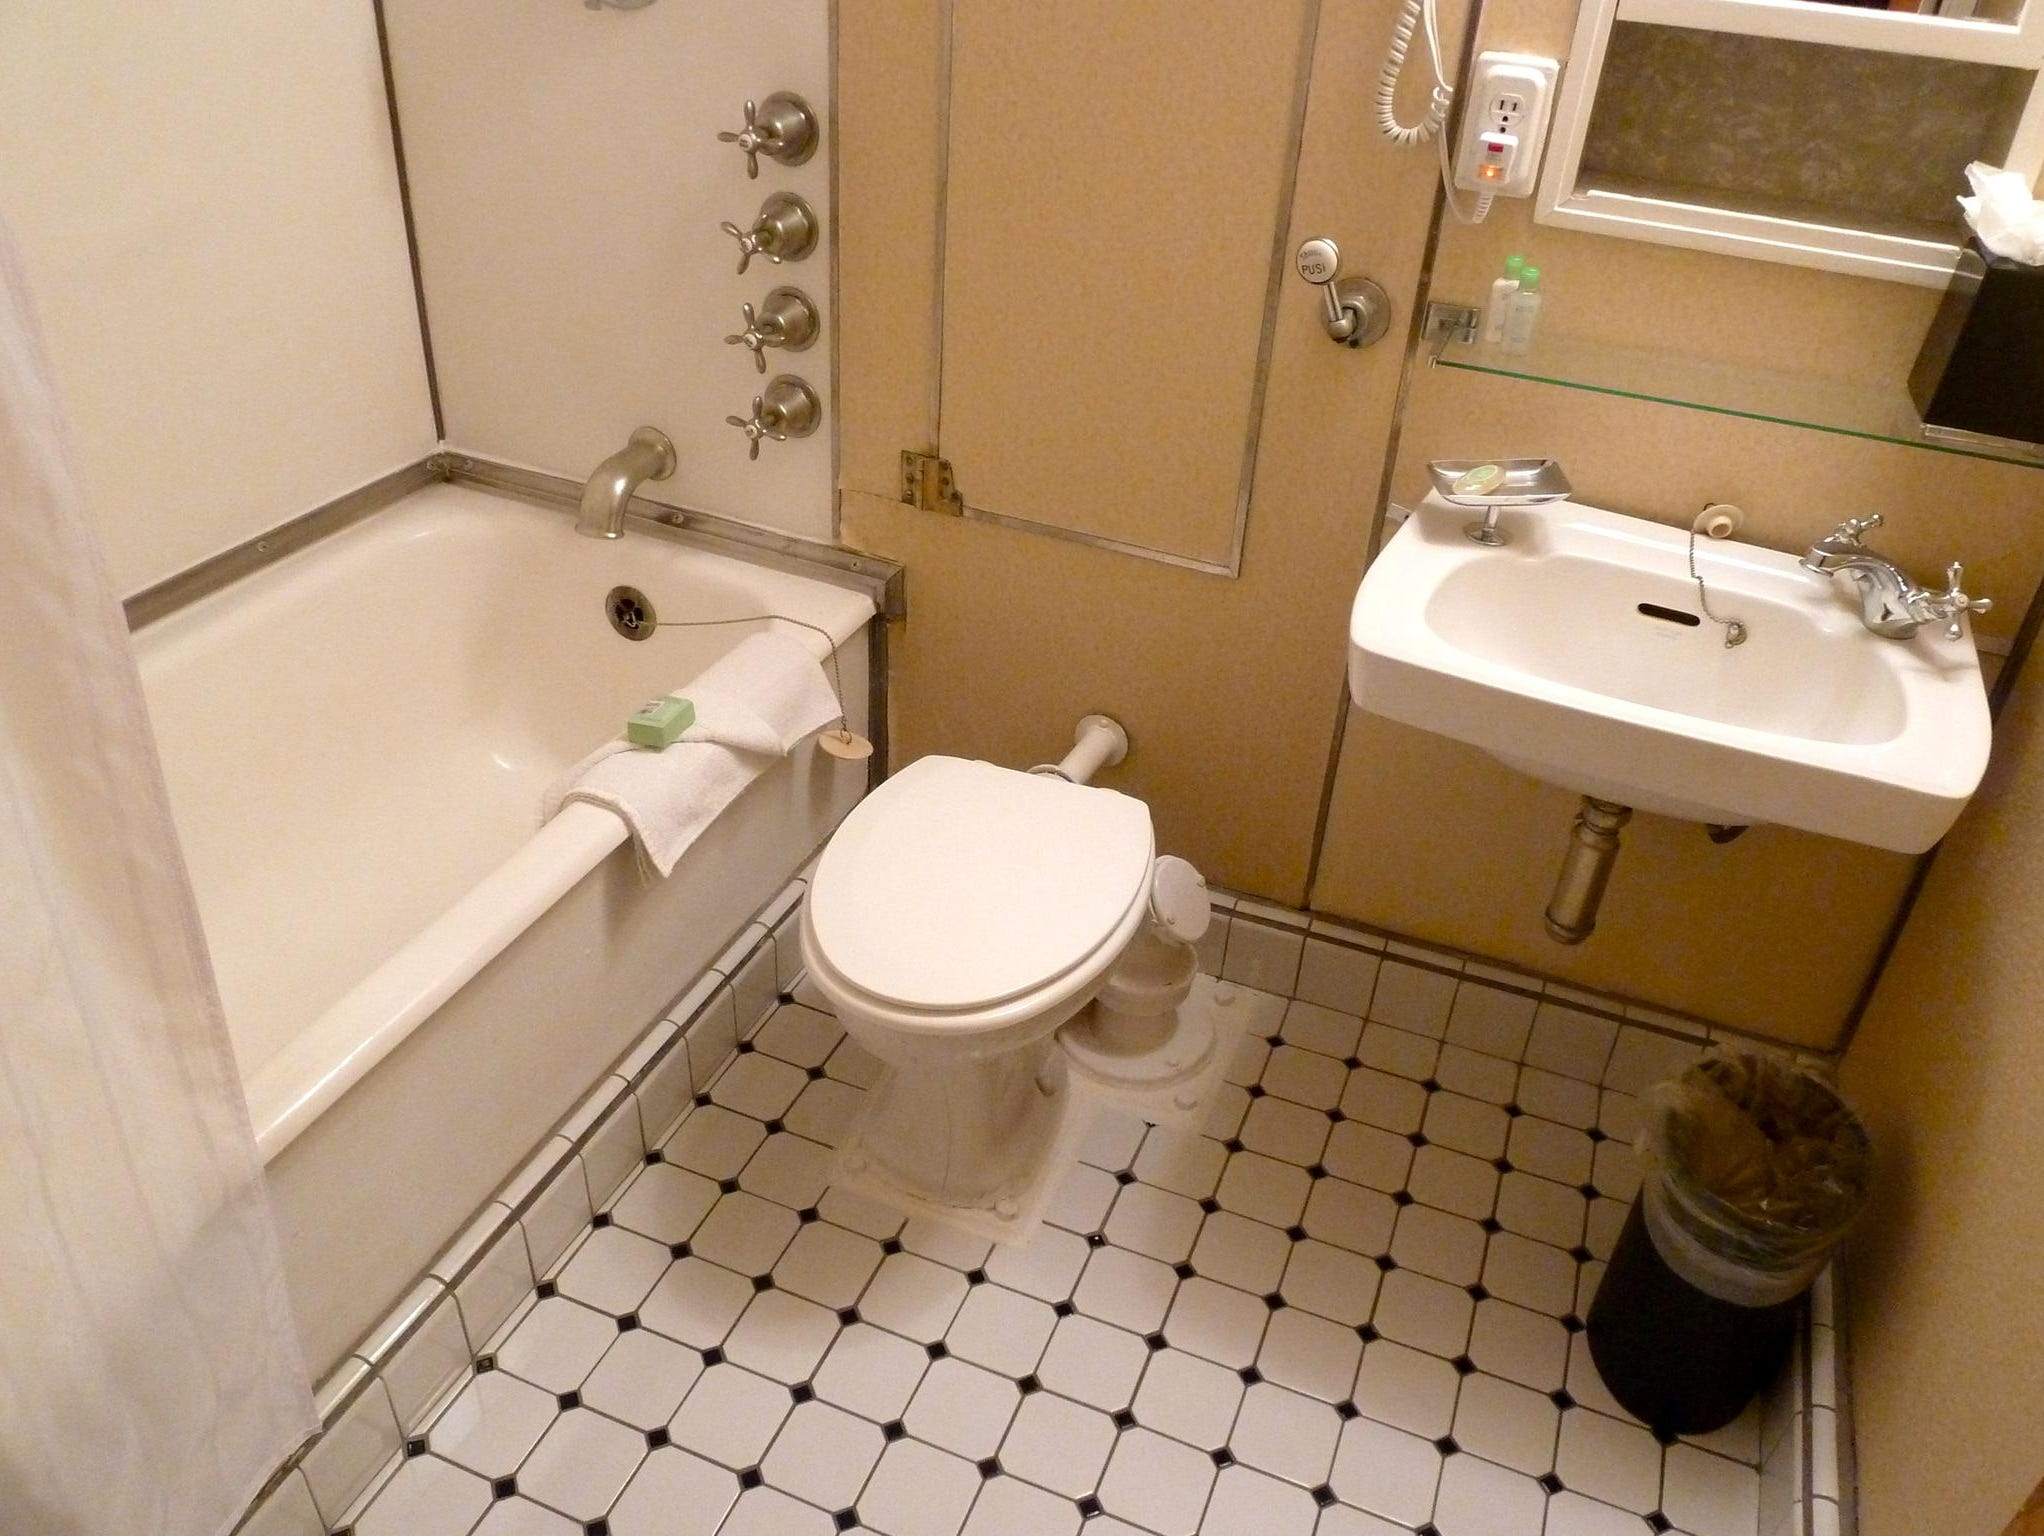 Bathrooms in many Queen Mary staterooms still have tubs with their original but now non-functional salt water taps.